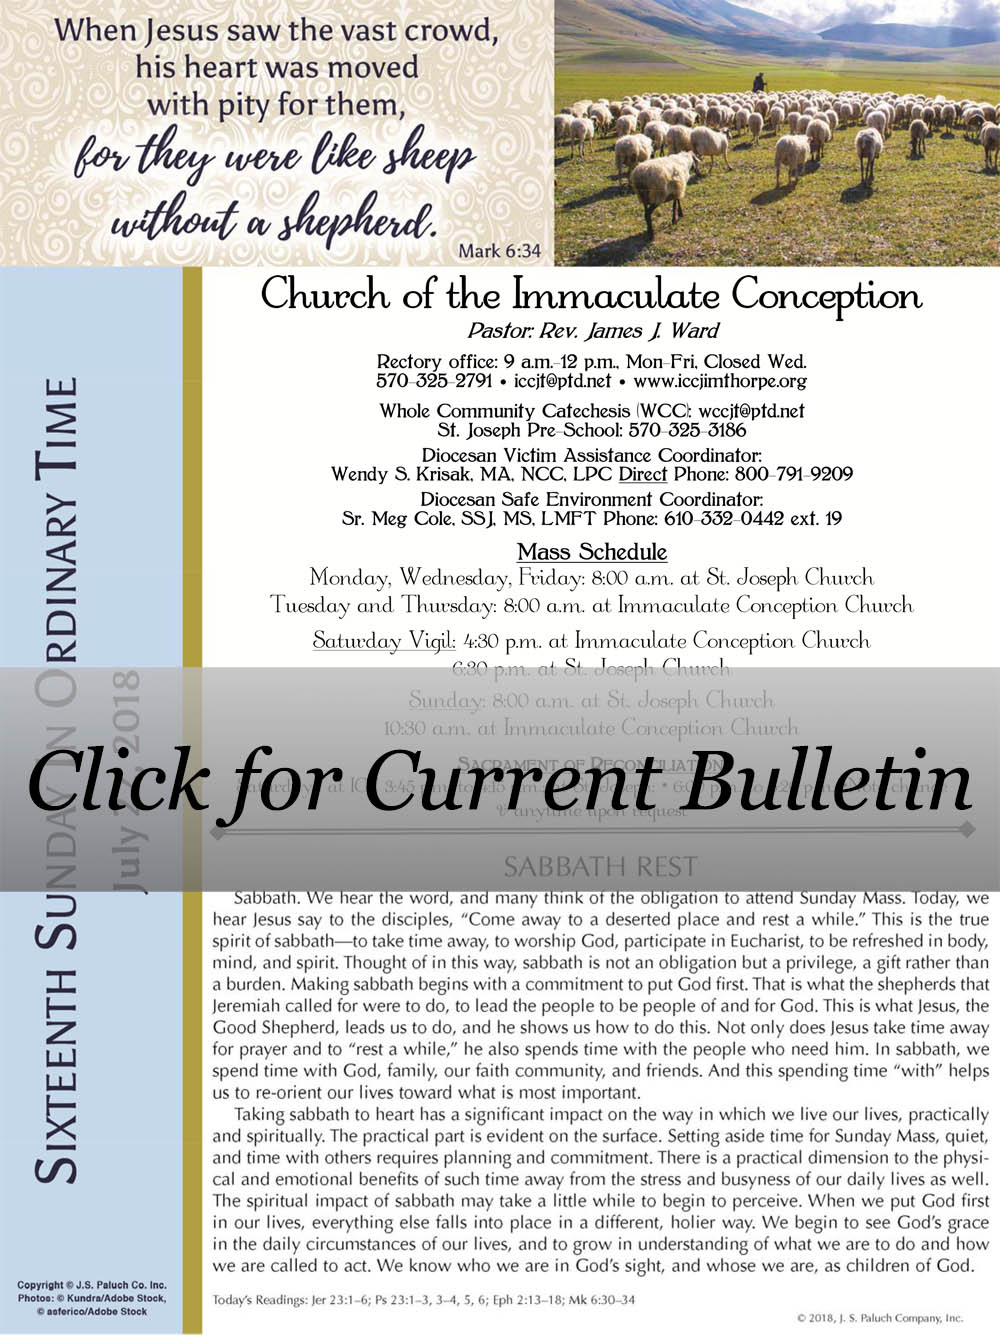 Current Bulletin